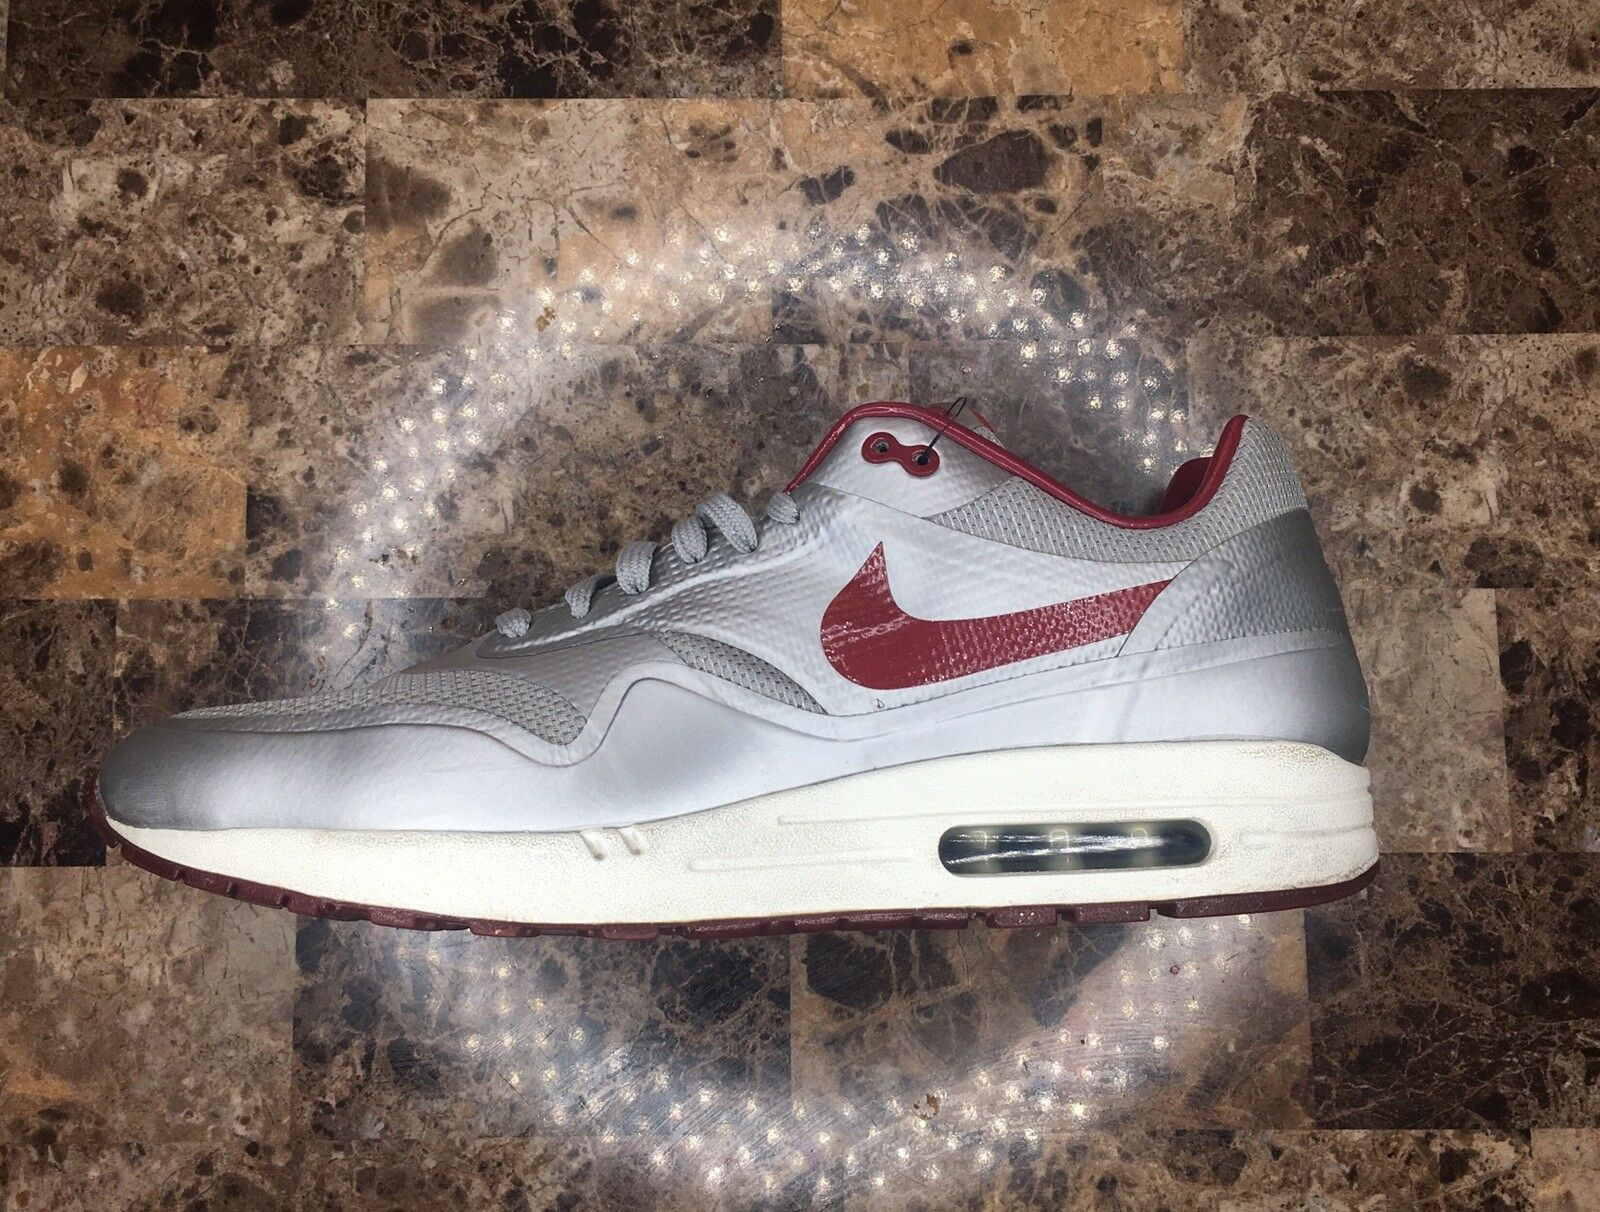 Nike Air Max 1 Hyperfuse Quickstrike Size 13 633087 006 (Silver   Deep Red)